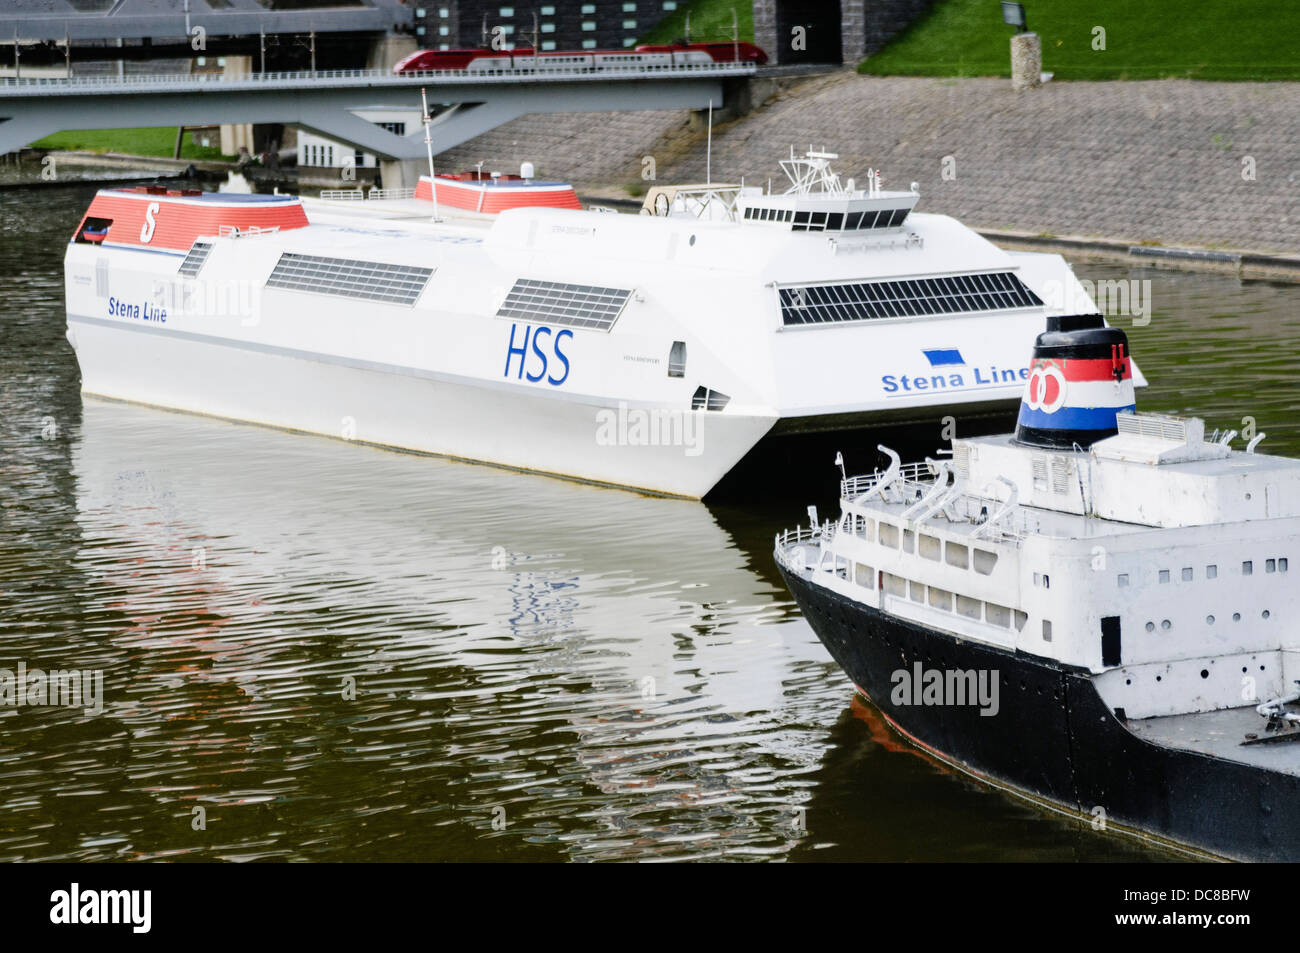 Stena Discovery HSS ferry, at Madurodam Interactive Miniture Park, Netherlands - Stock Image